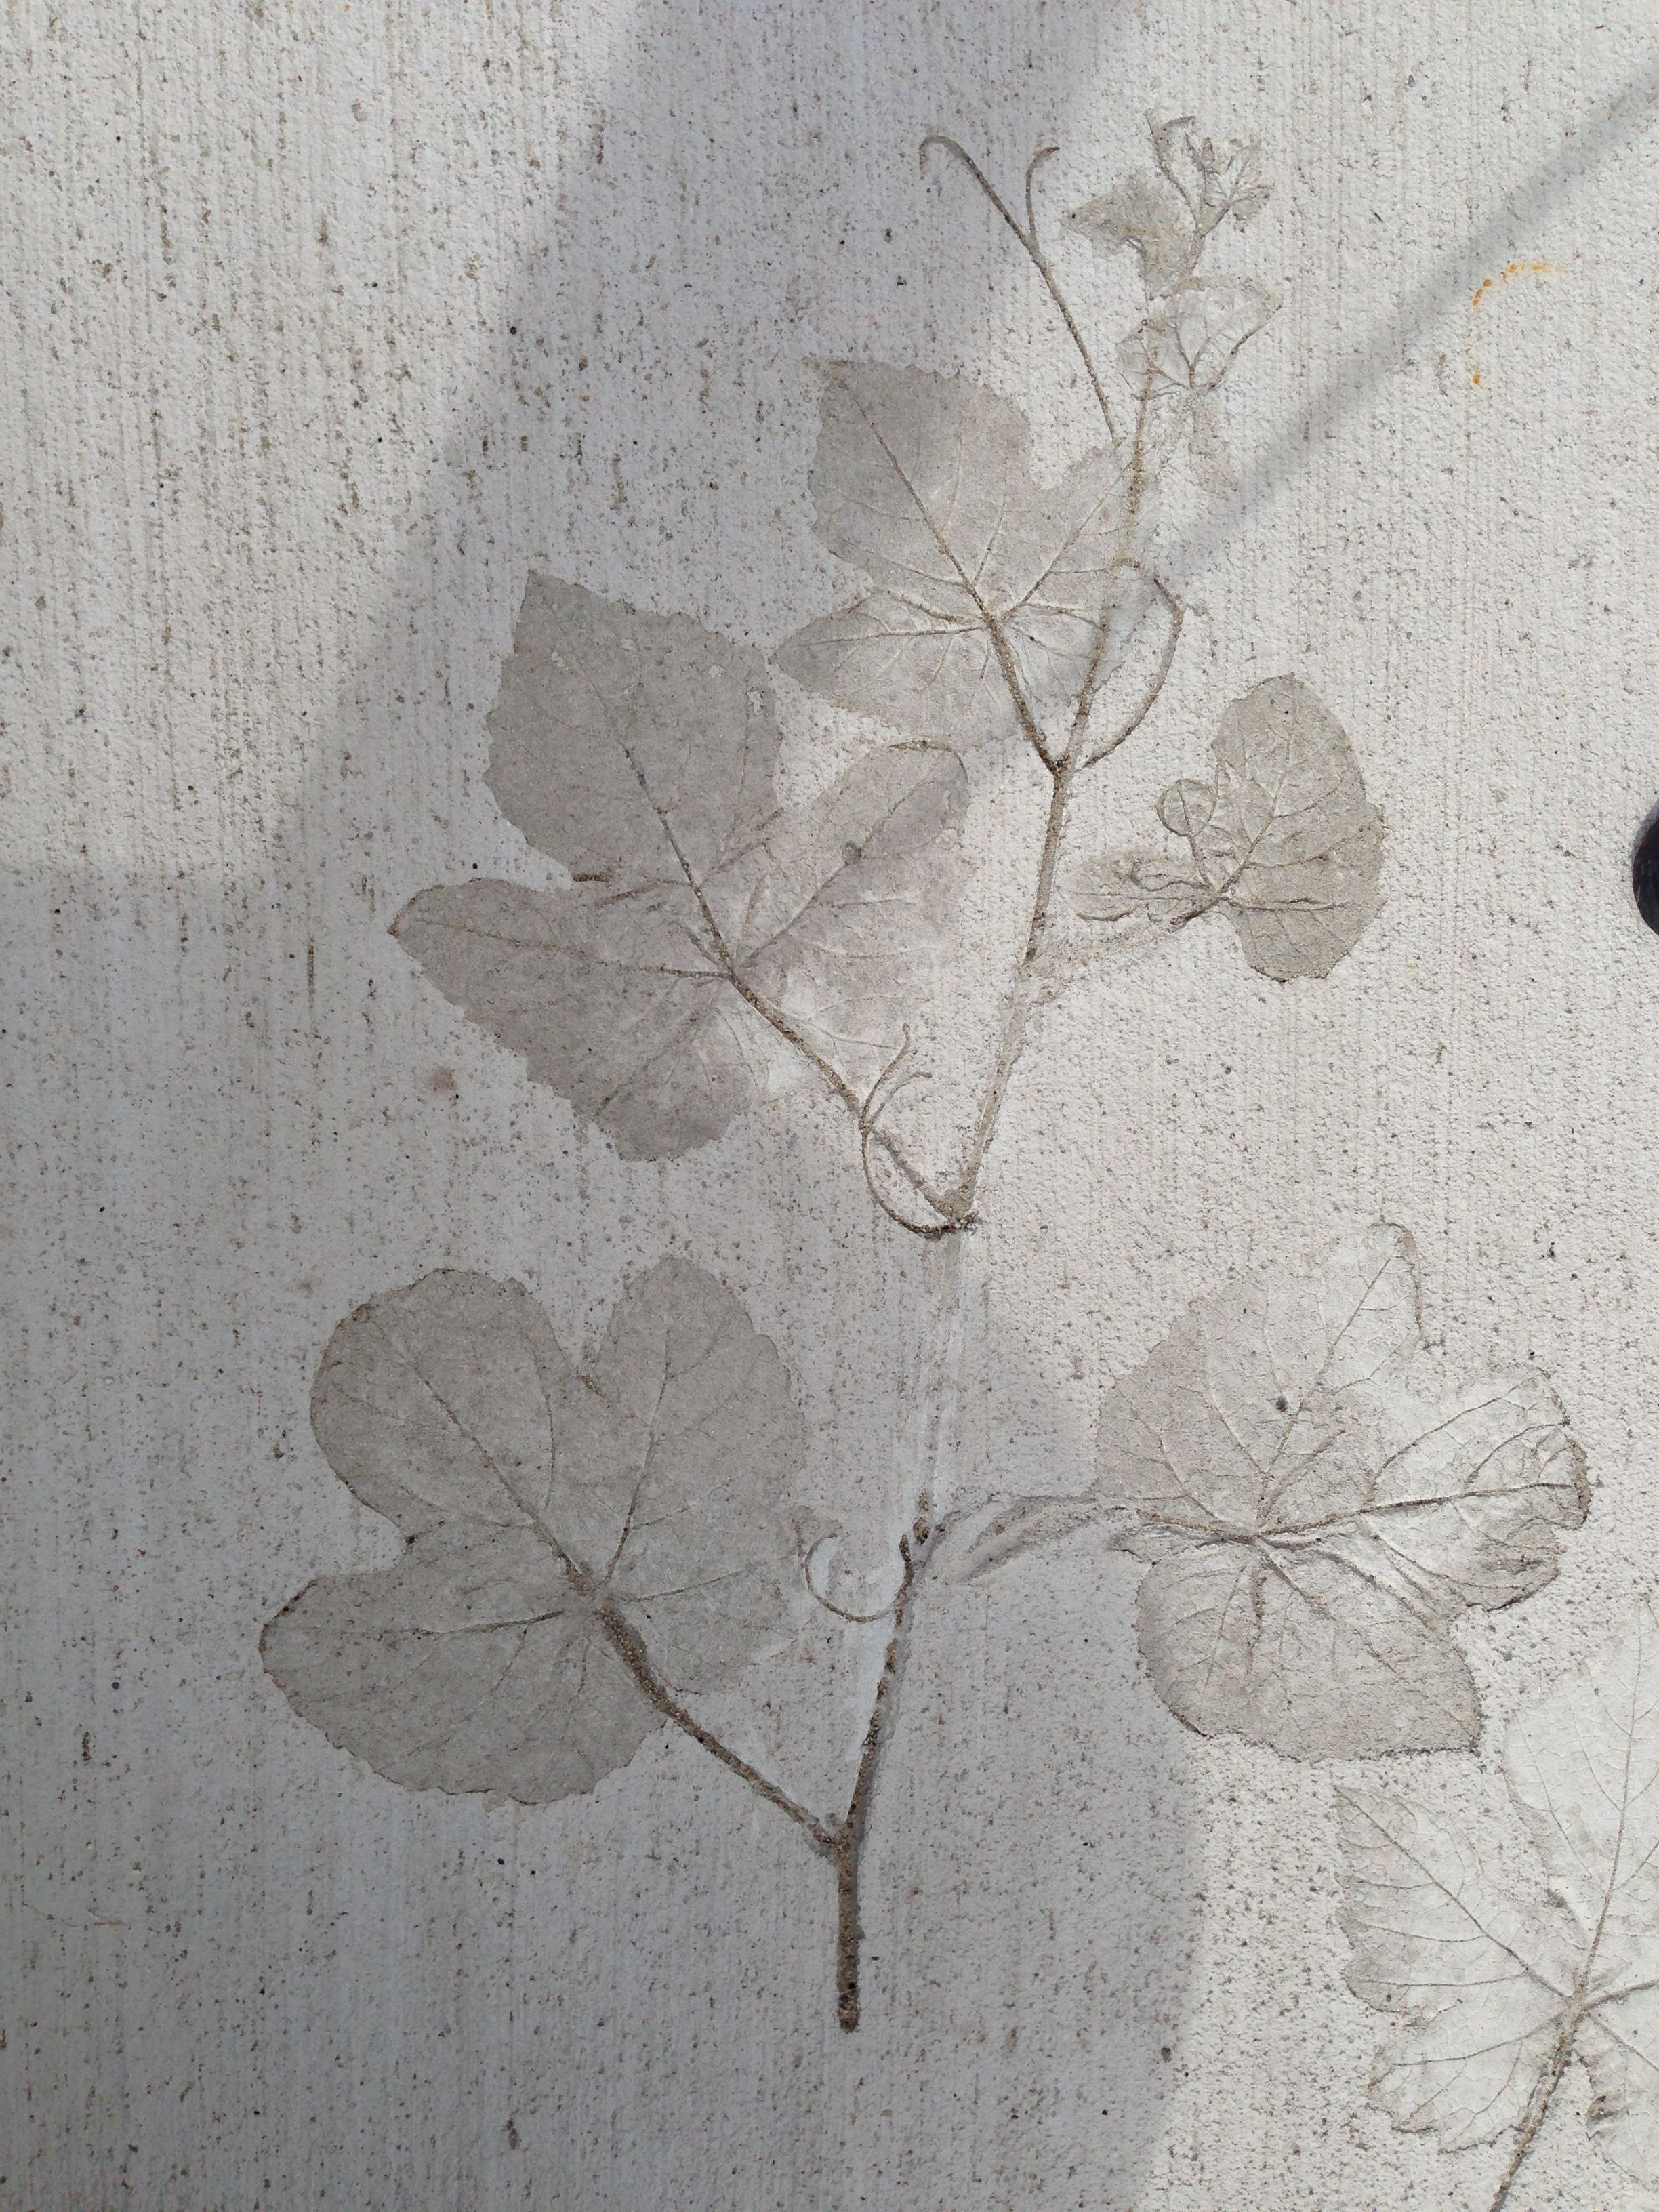 Leaves In Concrete Diy Pinterest In And Leaves